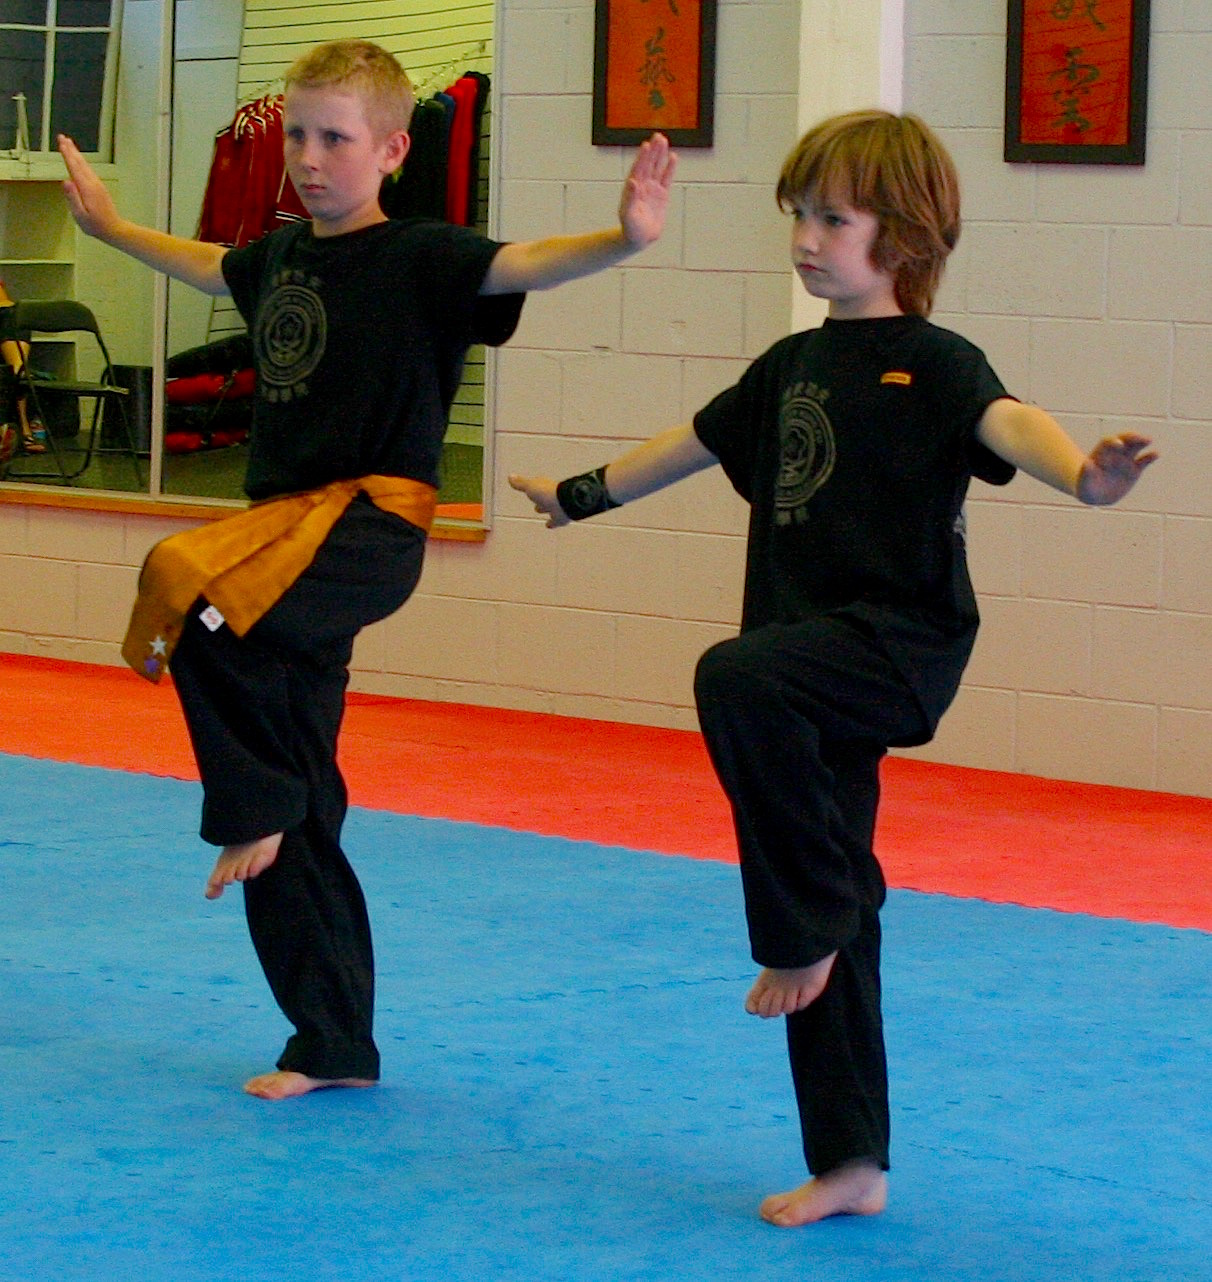 Superior Gross Motor Skills<br /> Strengthening of the body<br /> Developing Static & Dynamic Balance<br /> Improvement of Agility<br /> Improvement of Isolated Movement Skills<br /> Developing Coordination<br /> Increase Speed of Movement & Reflexes<br /> Development of Endurance<br /> Foundation of Martial Arts Skills